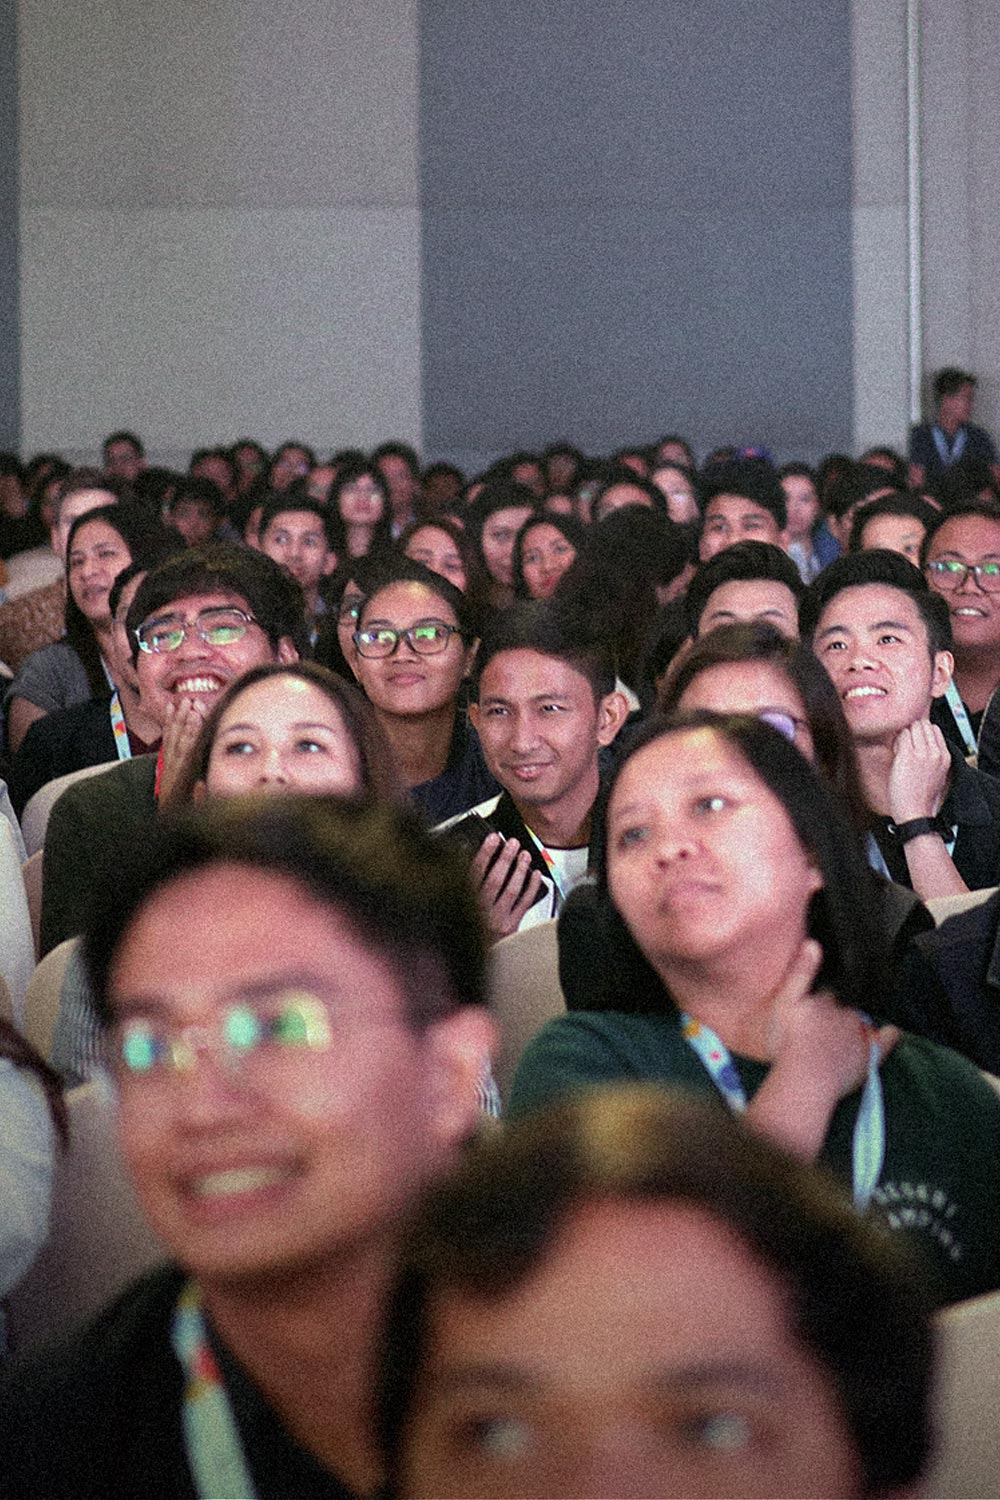 The audience of UX+ Conference 2019